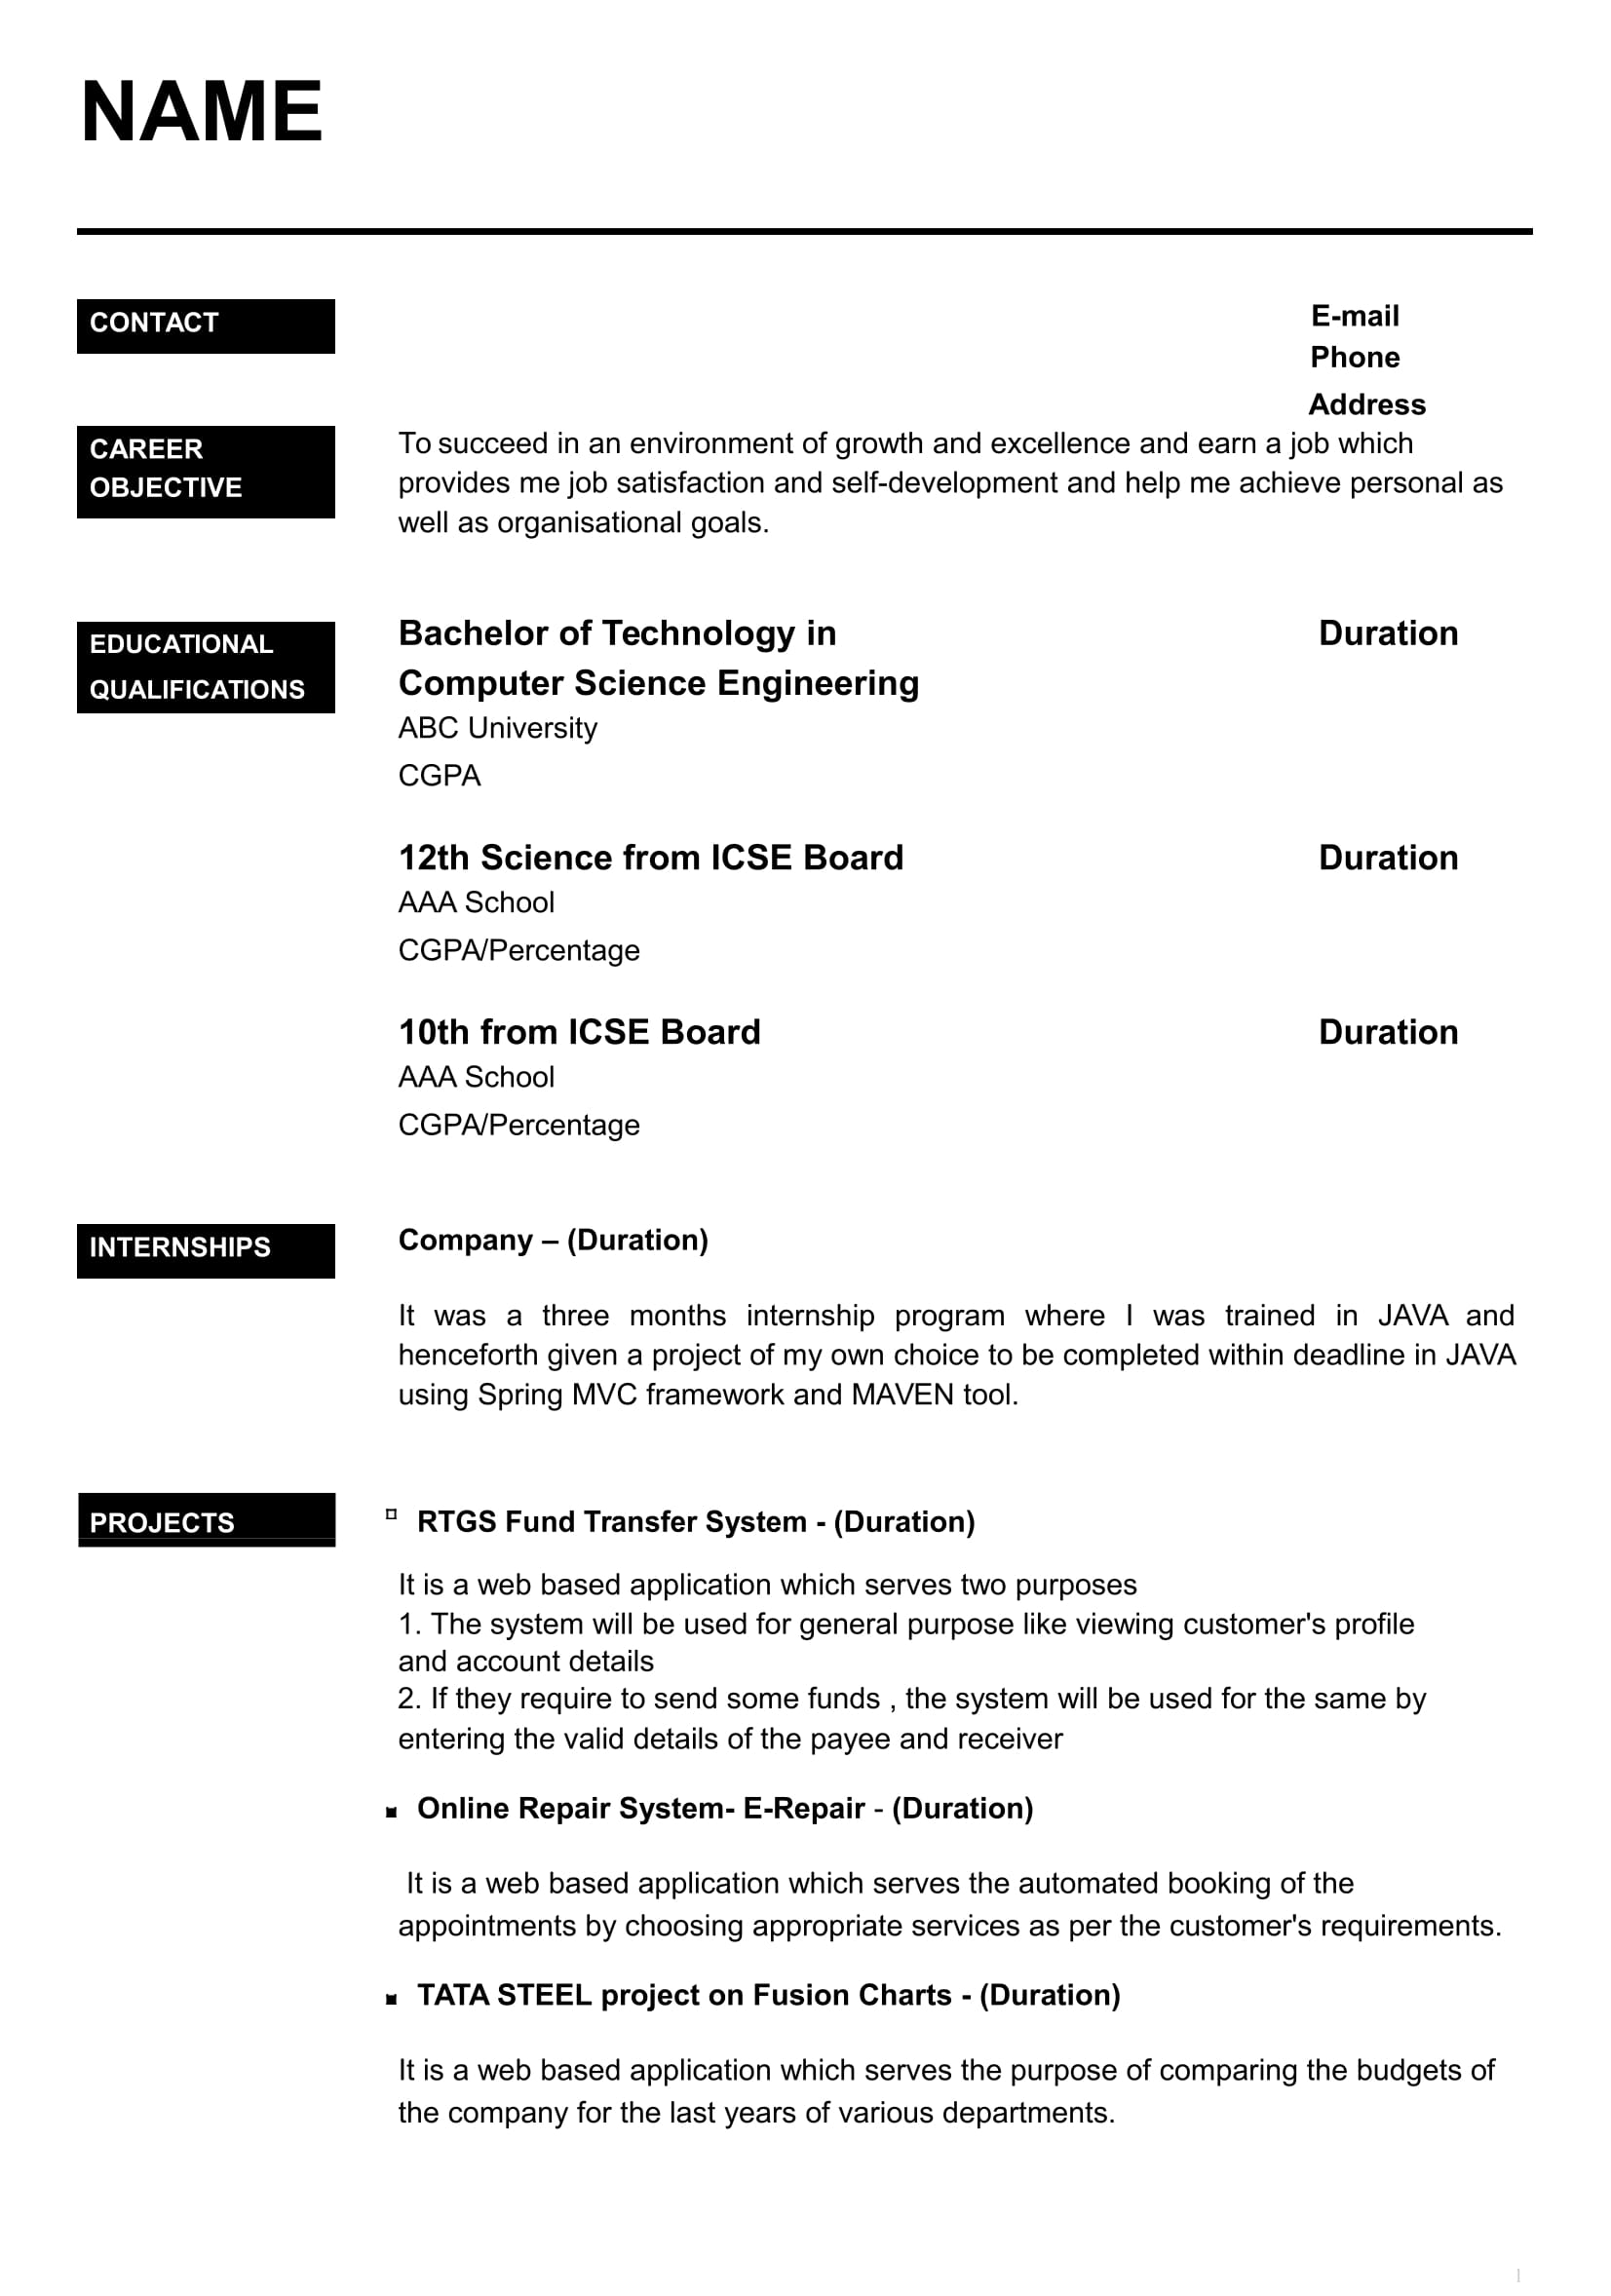 Sample Resume For Fresher Computer Science Engineer 32 43 Resume Templates For Freshers Download Free Word Format